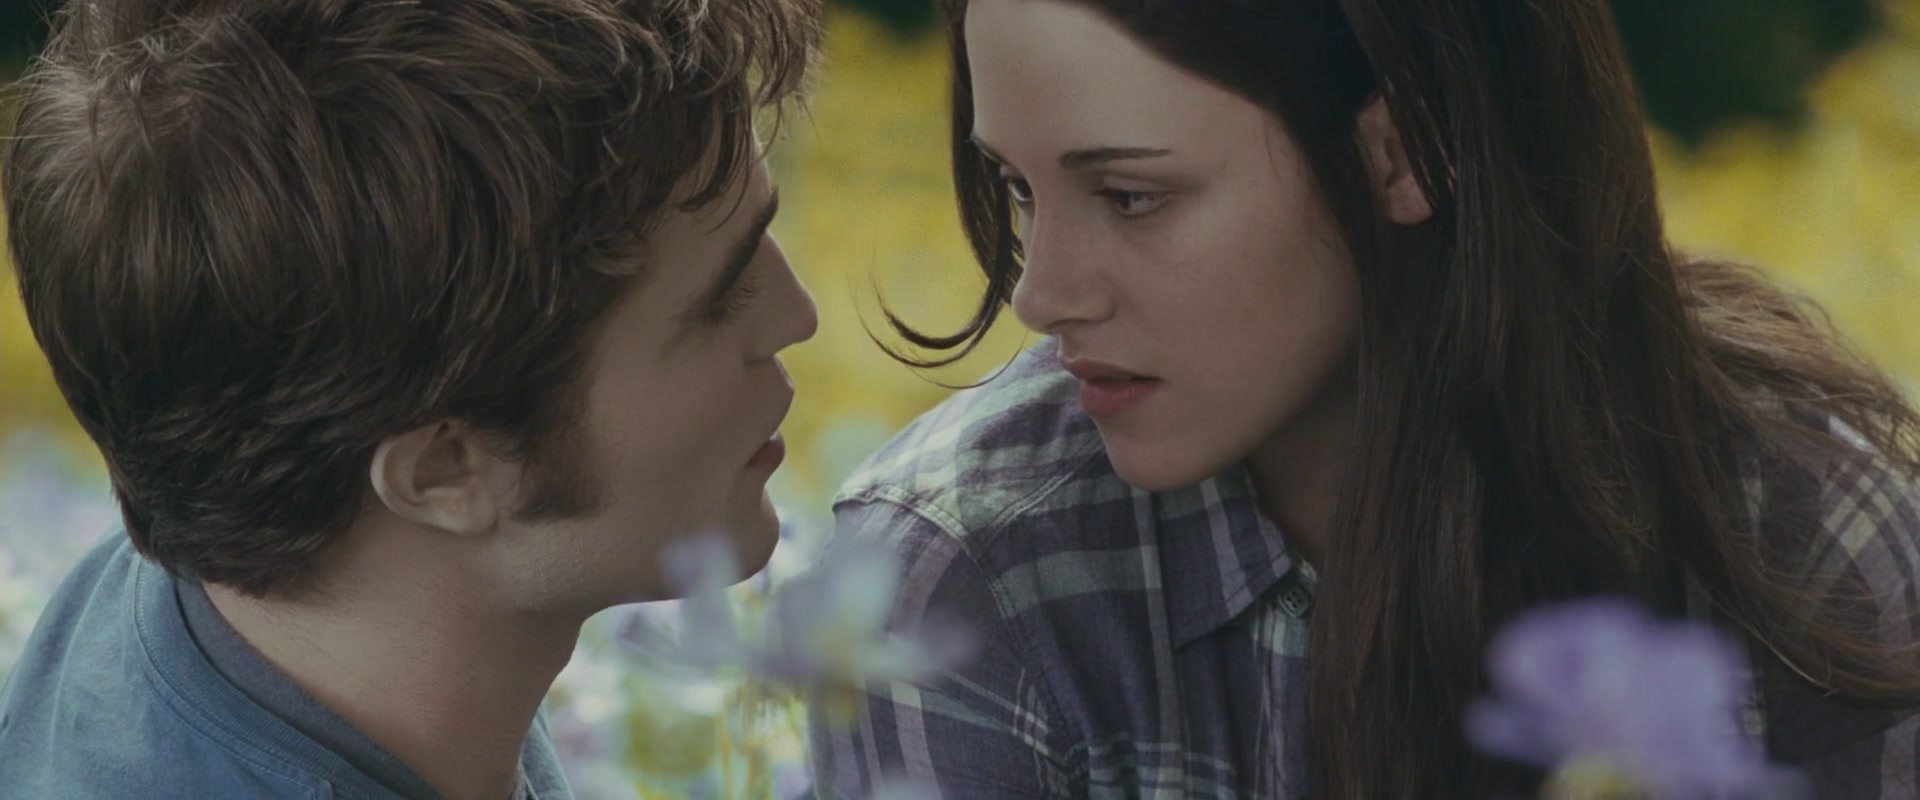 twilight the movie Here's the deal with twilight: edward cullen, a 100-something-year-old vampire who doesn't look a day over 17, is attending high school along with his adoptive vampire family.